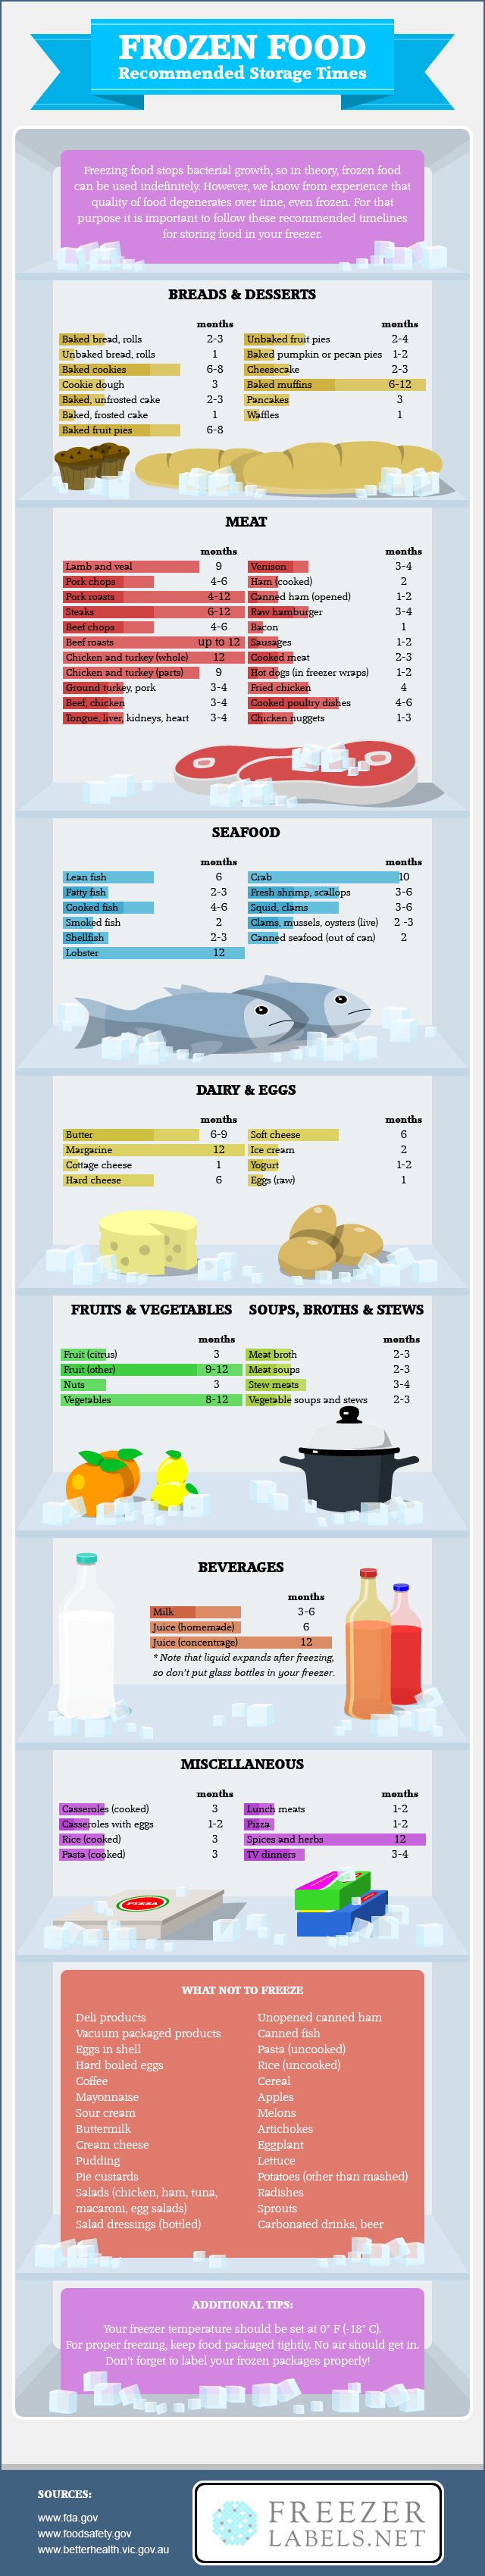 How Long Can You Store Food In The Freezer Chart